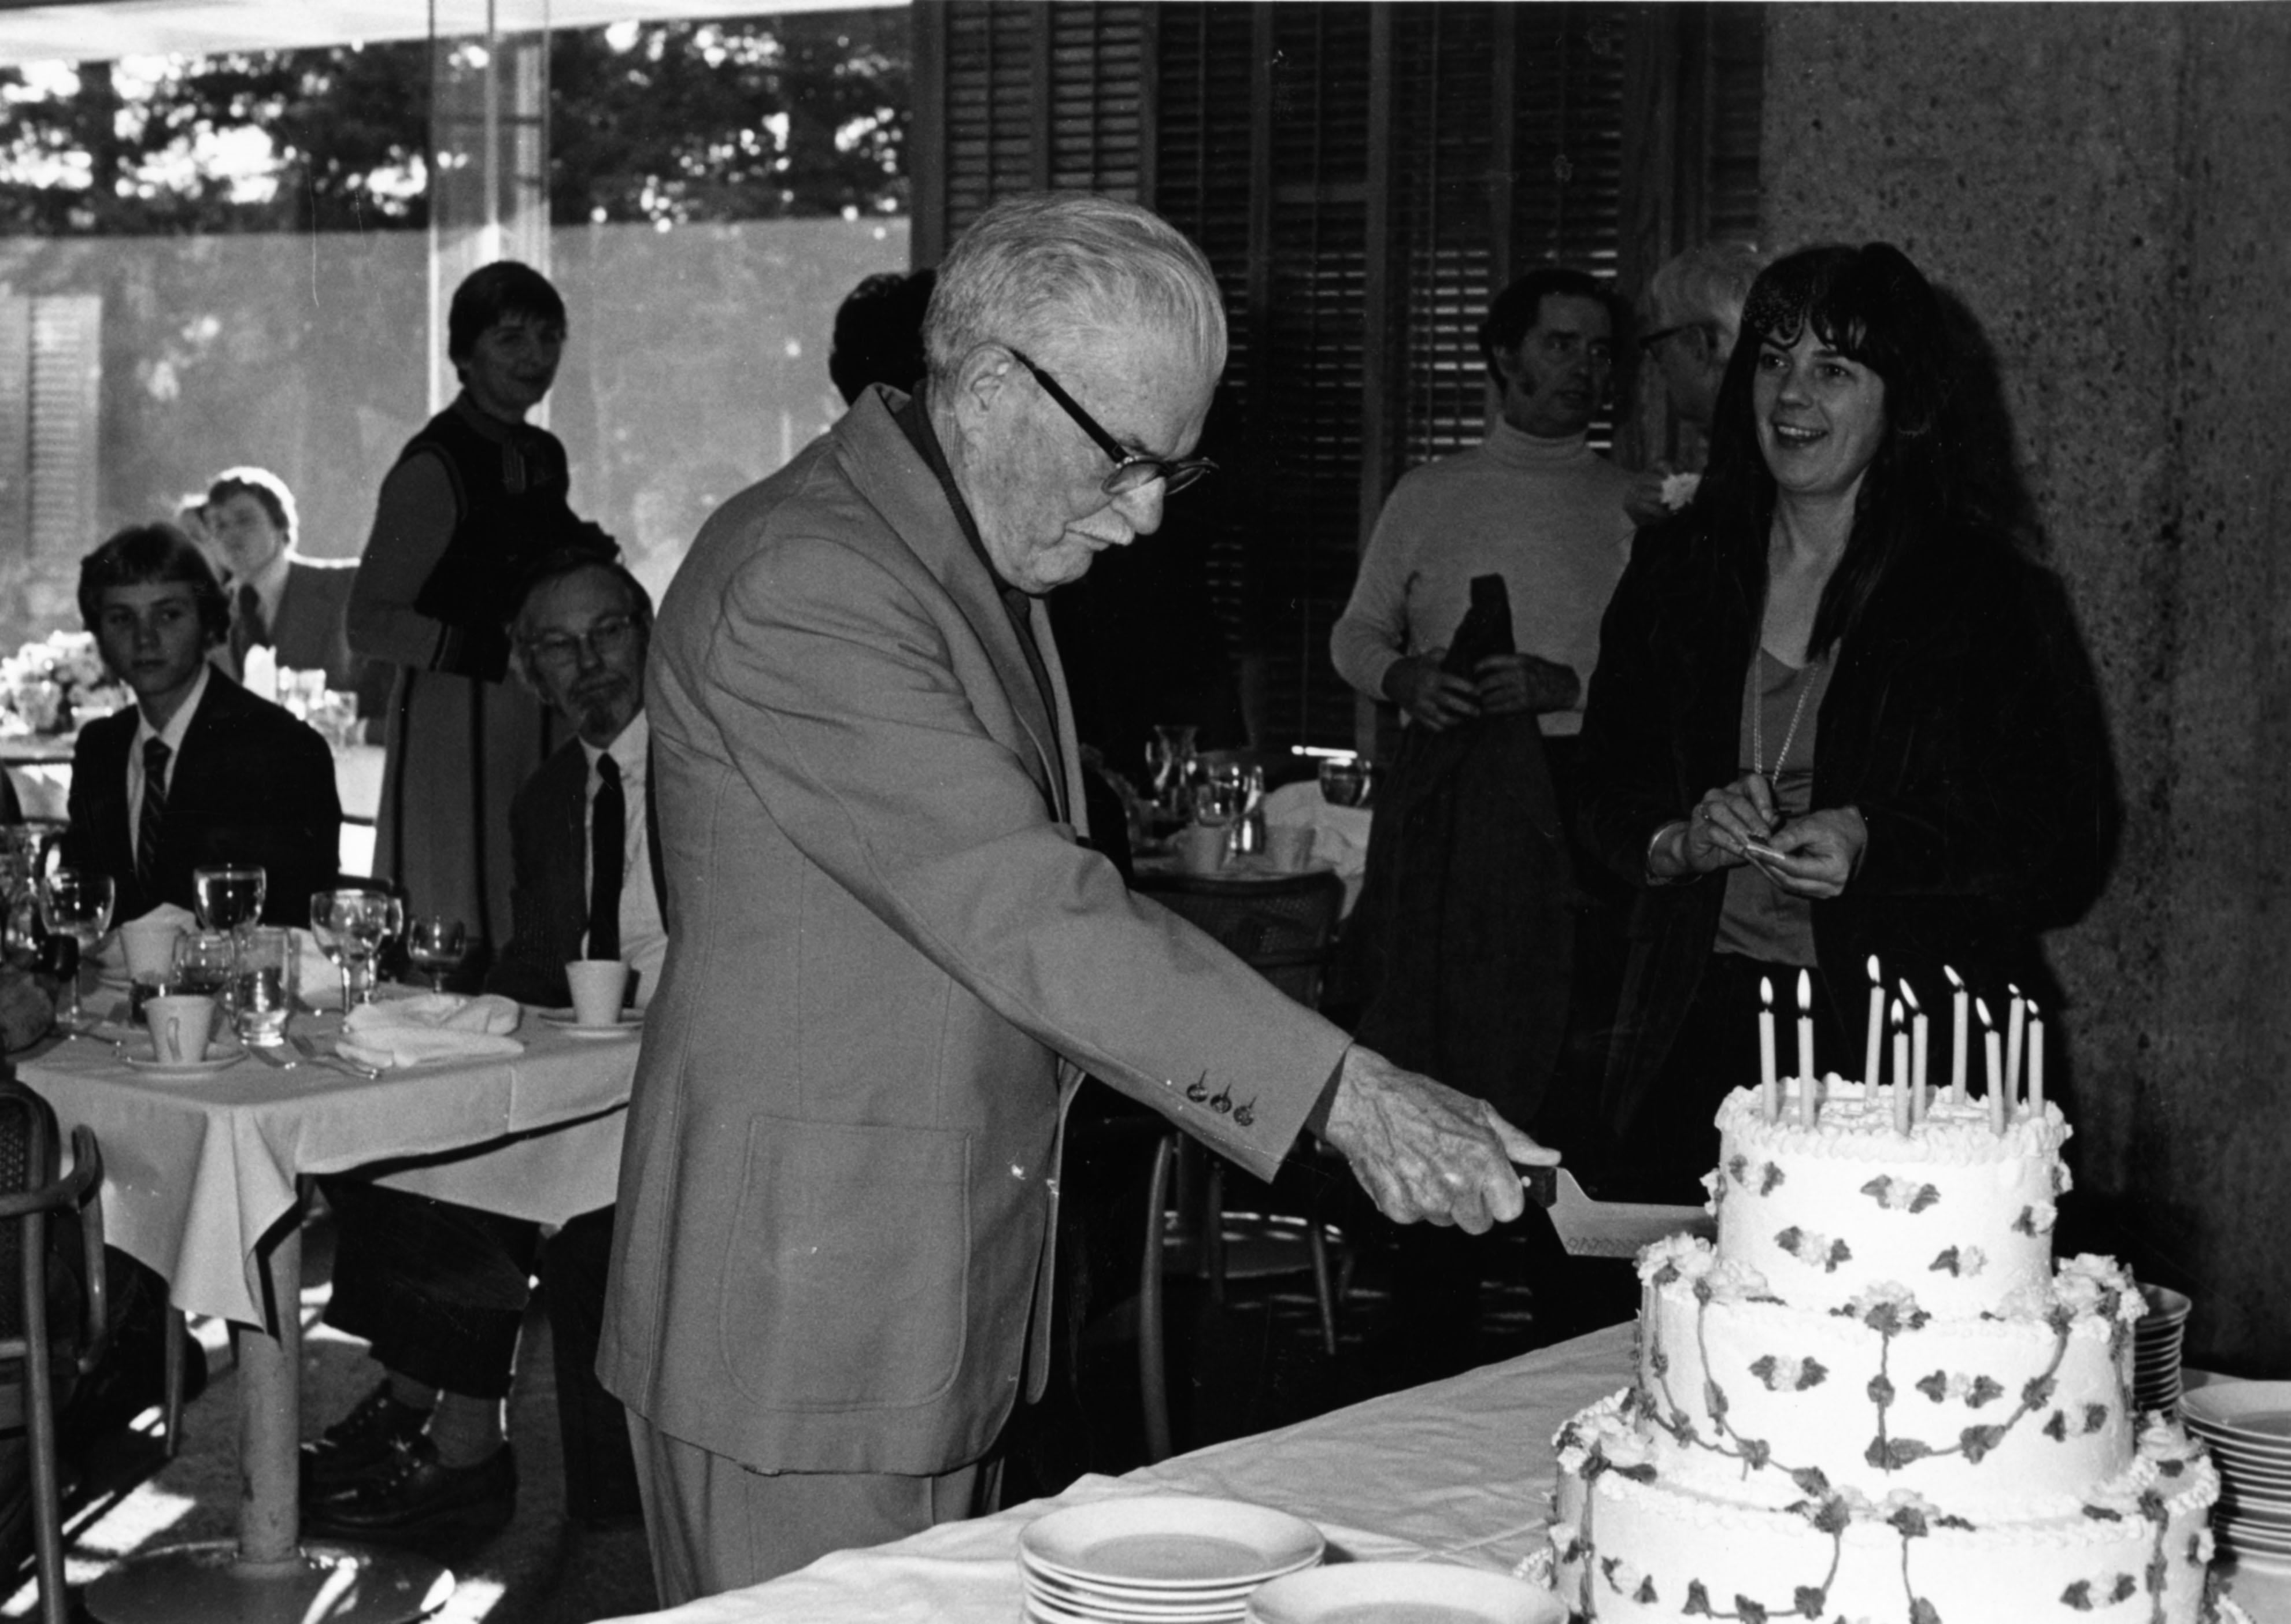 Stringfellow Barr Cutting Cake On His 80th Birthday At Woodrow Wilsons Former Home In Princeton New Jersey